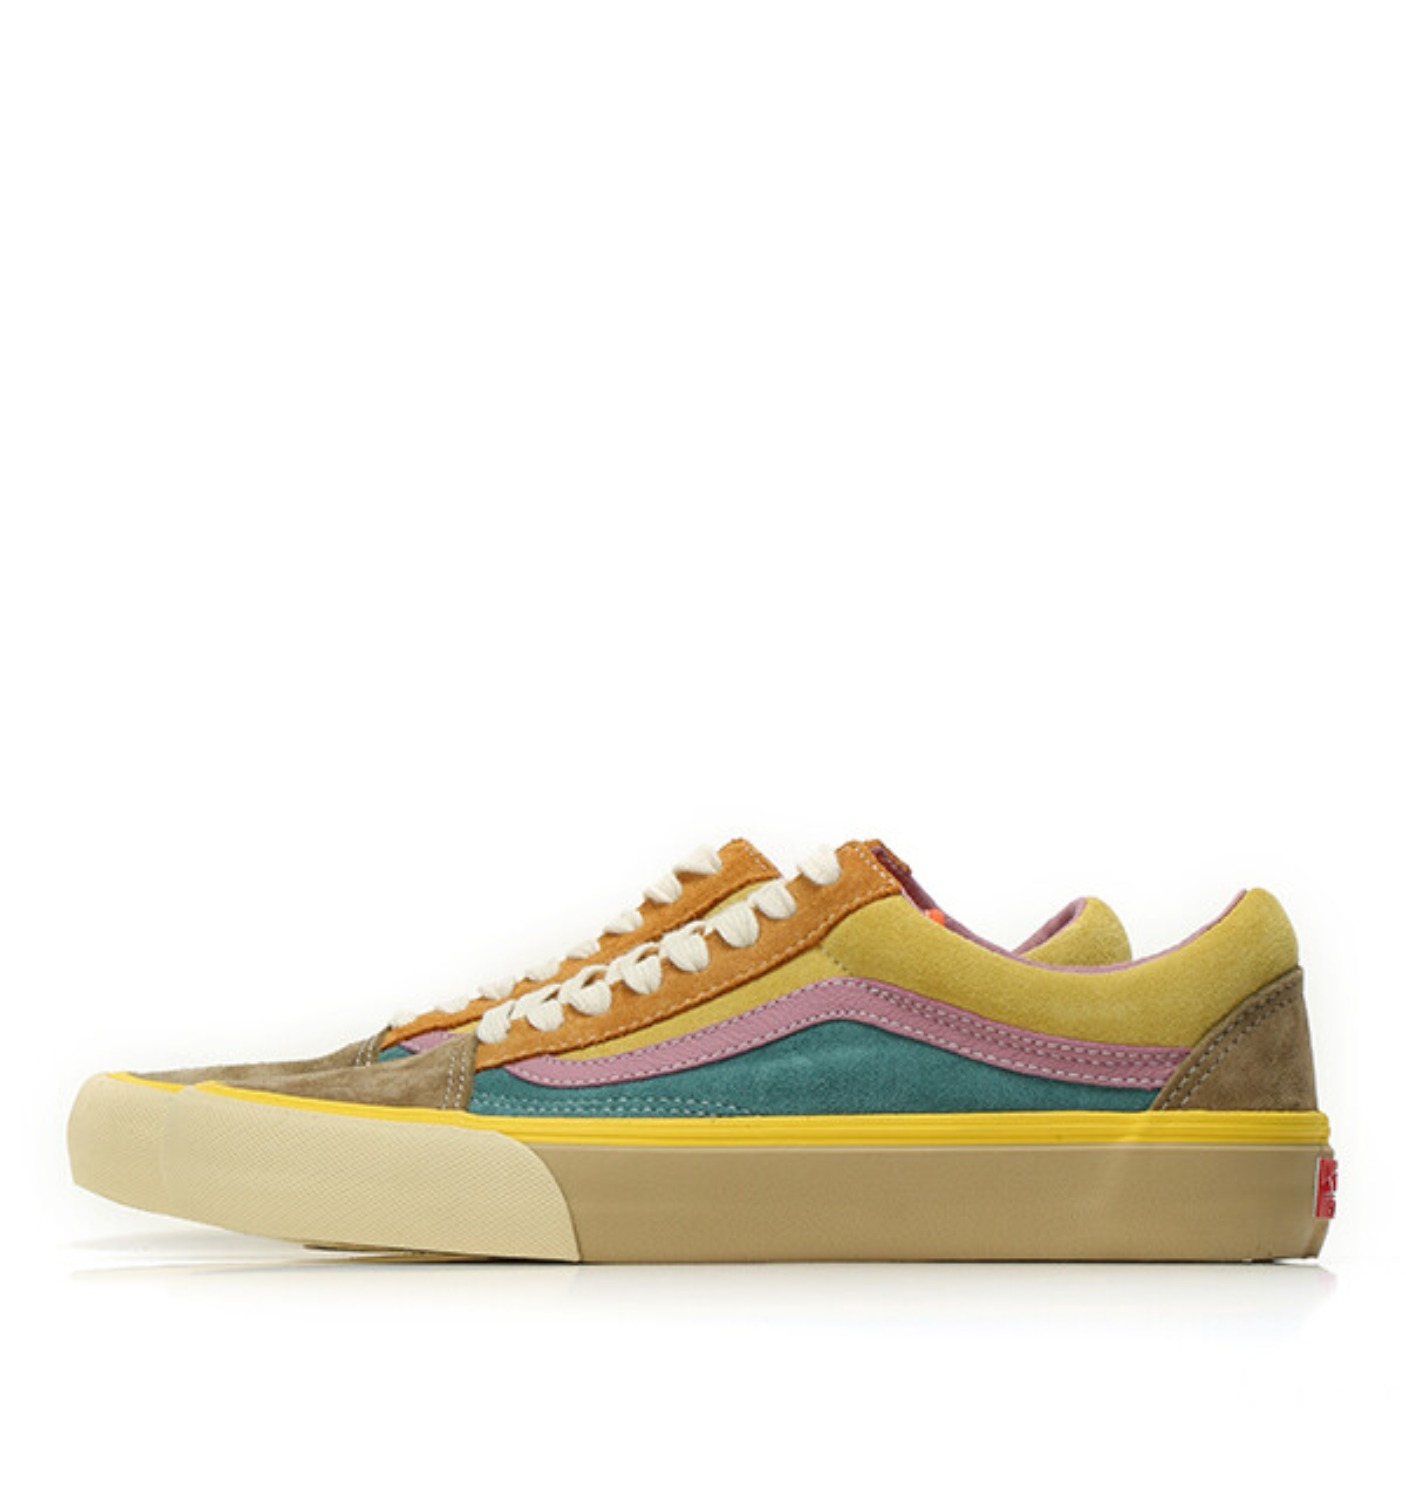 OLD SKOOL VLT LX(SUEDE/LEATHER)MULTI